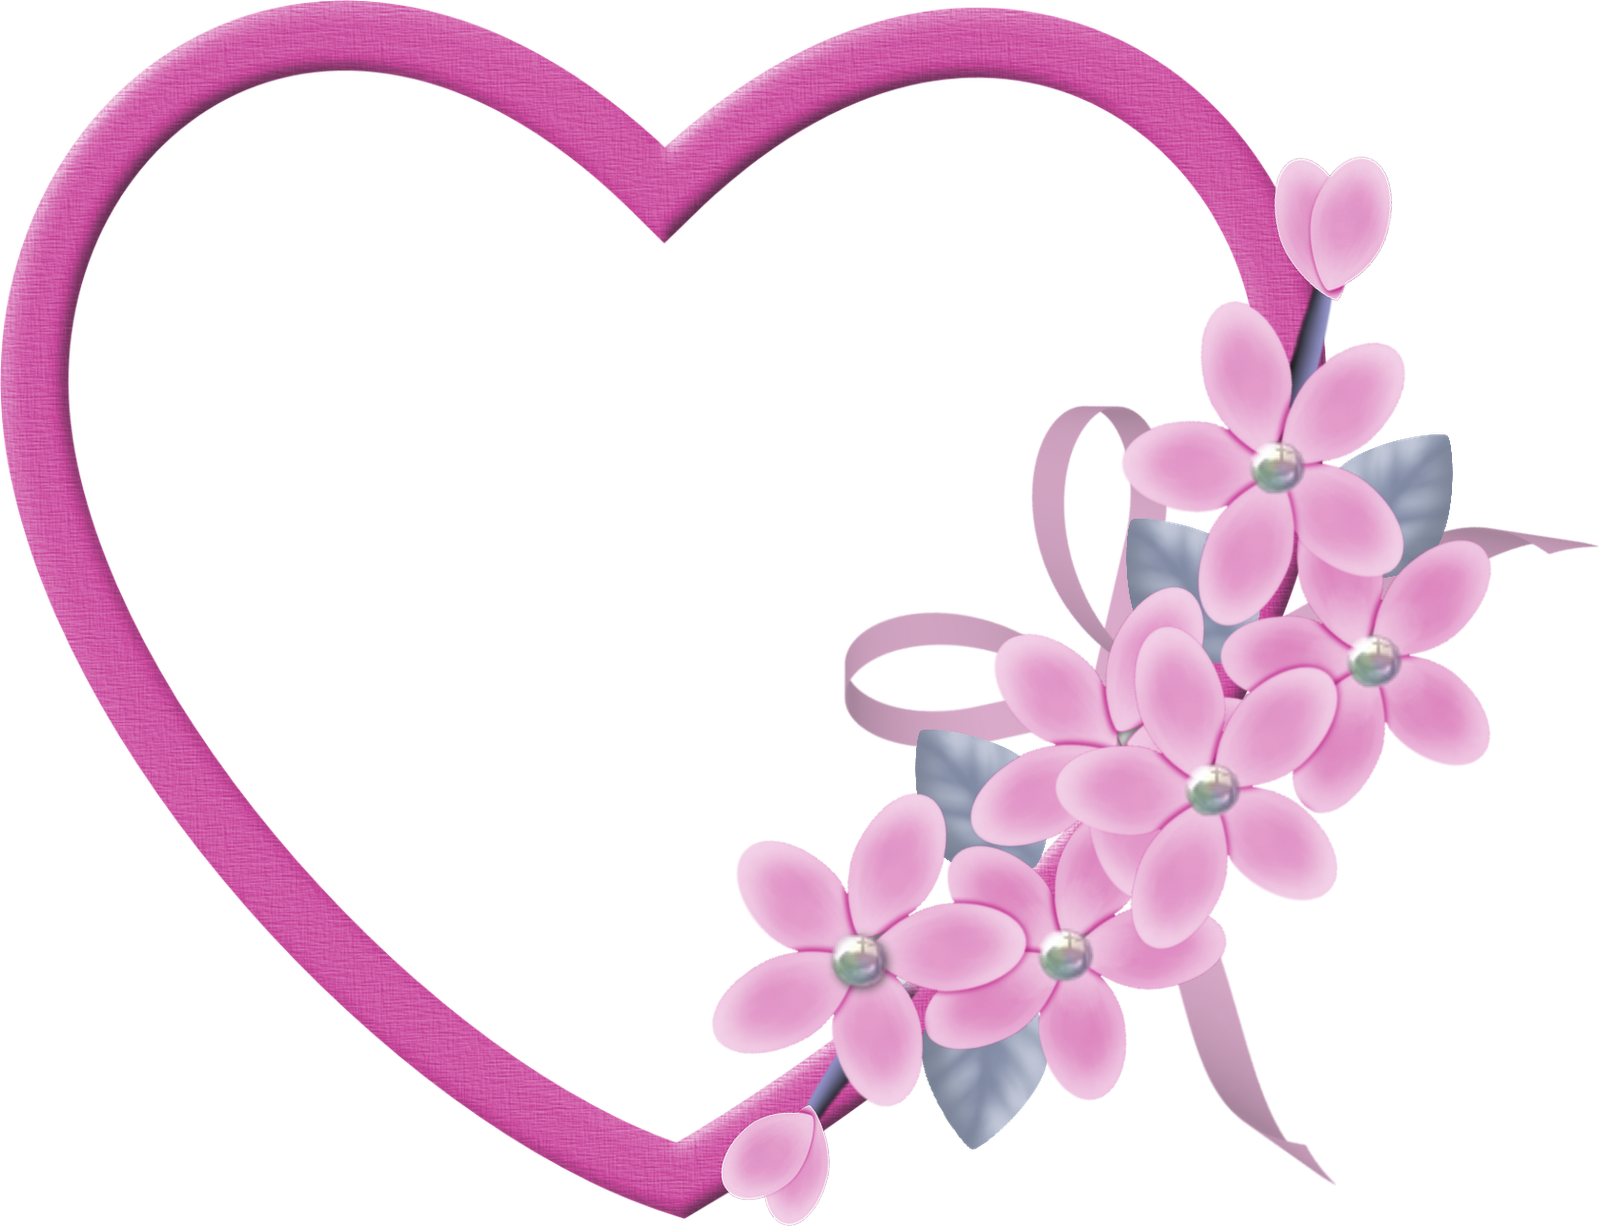 Large Pink Heart Transparent Frame With Pink Flowers Gallery Yopriceville High Quality Images And Transparent Png Pink Heart Heart Frame Clip Art Freebies